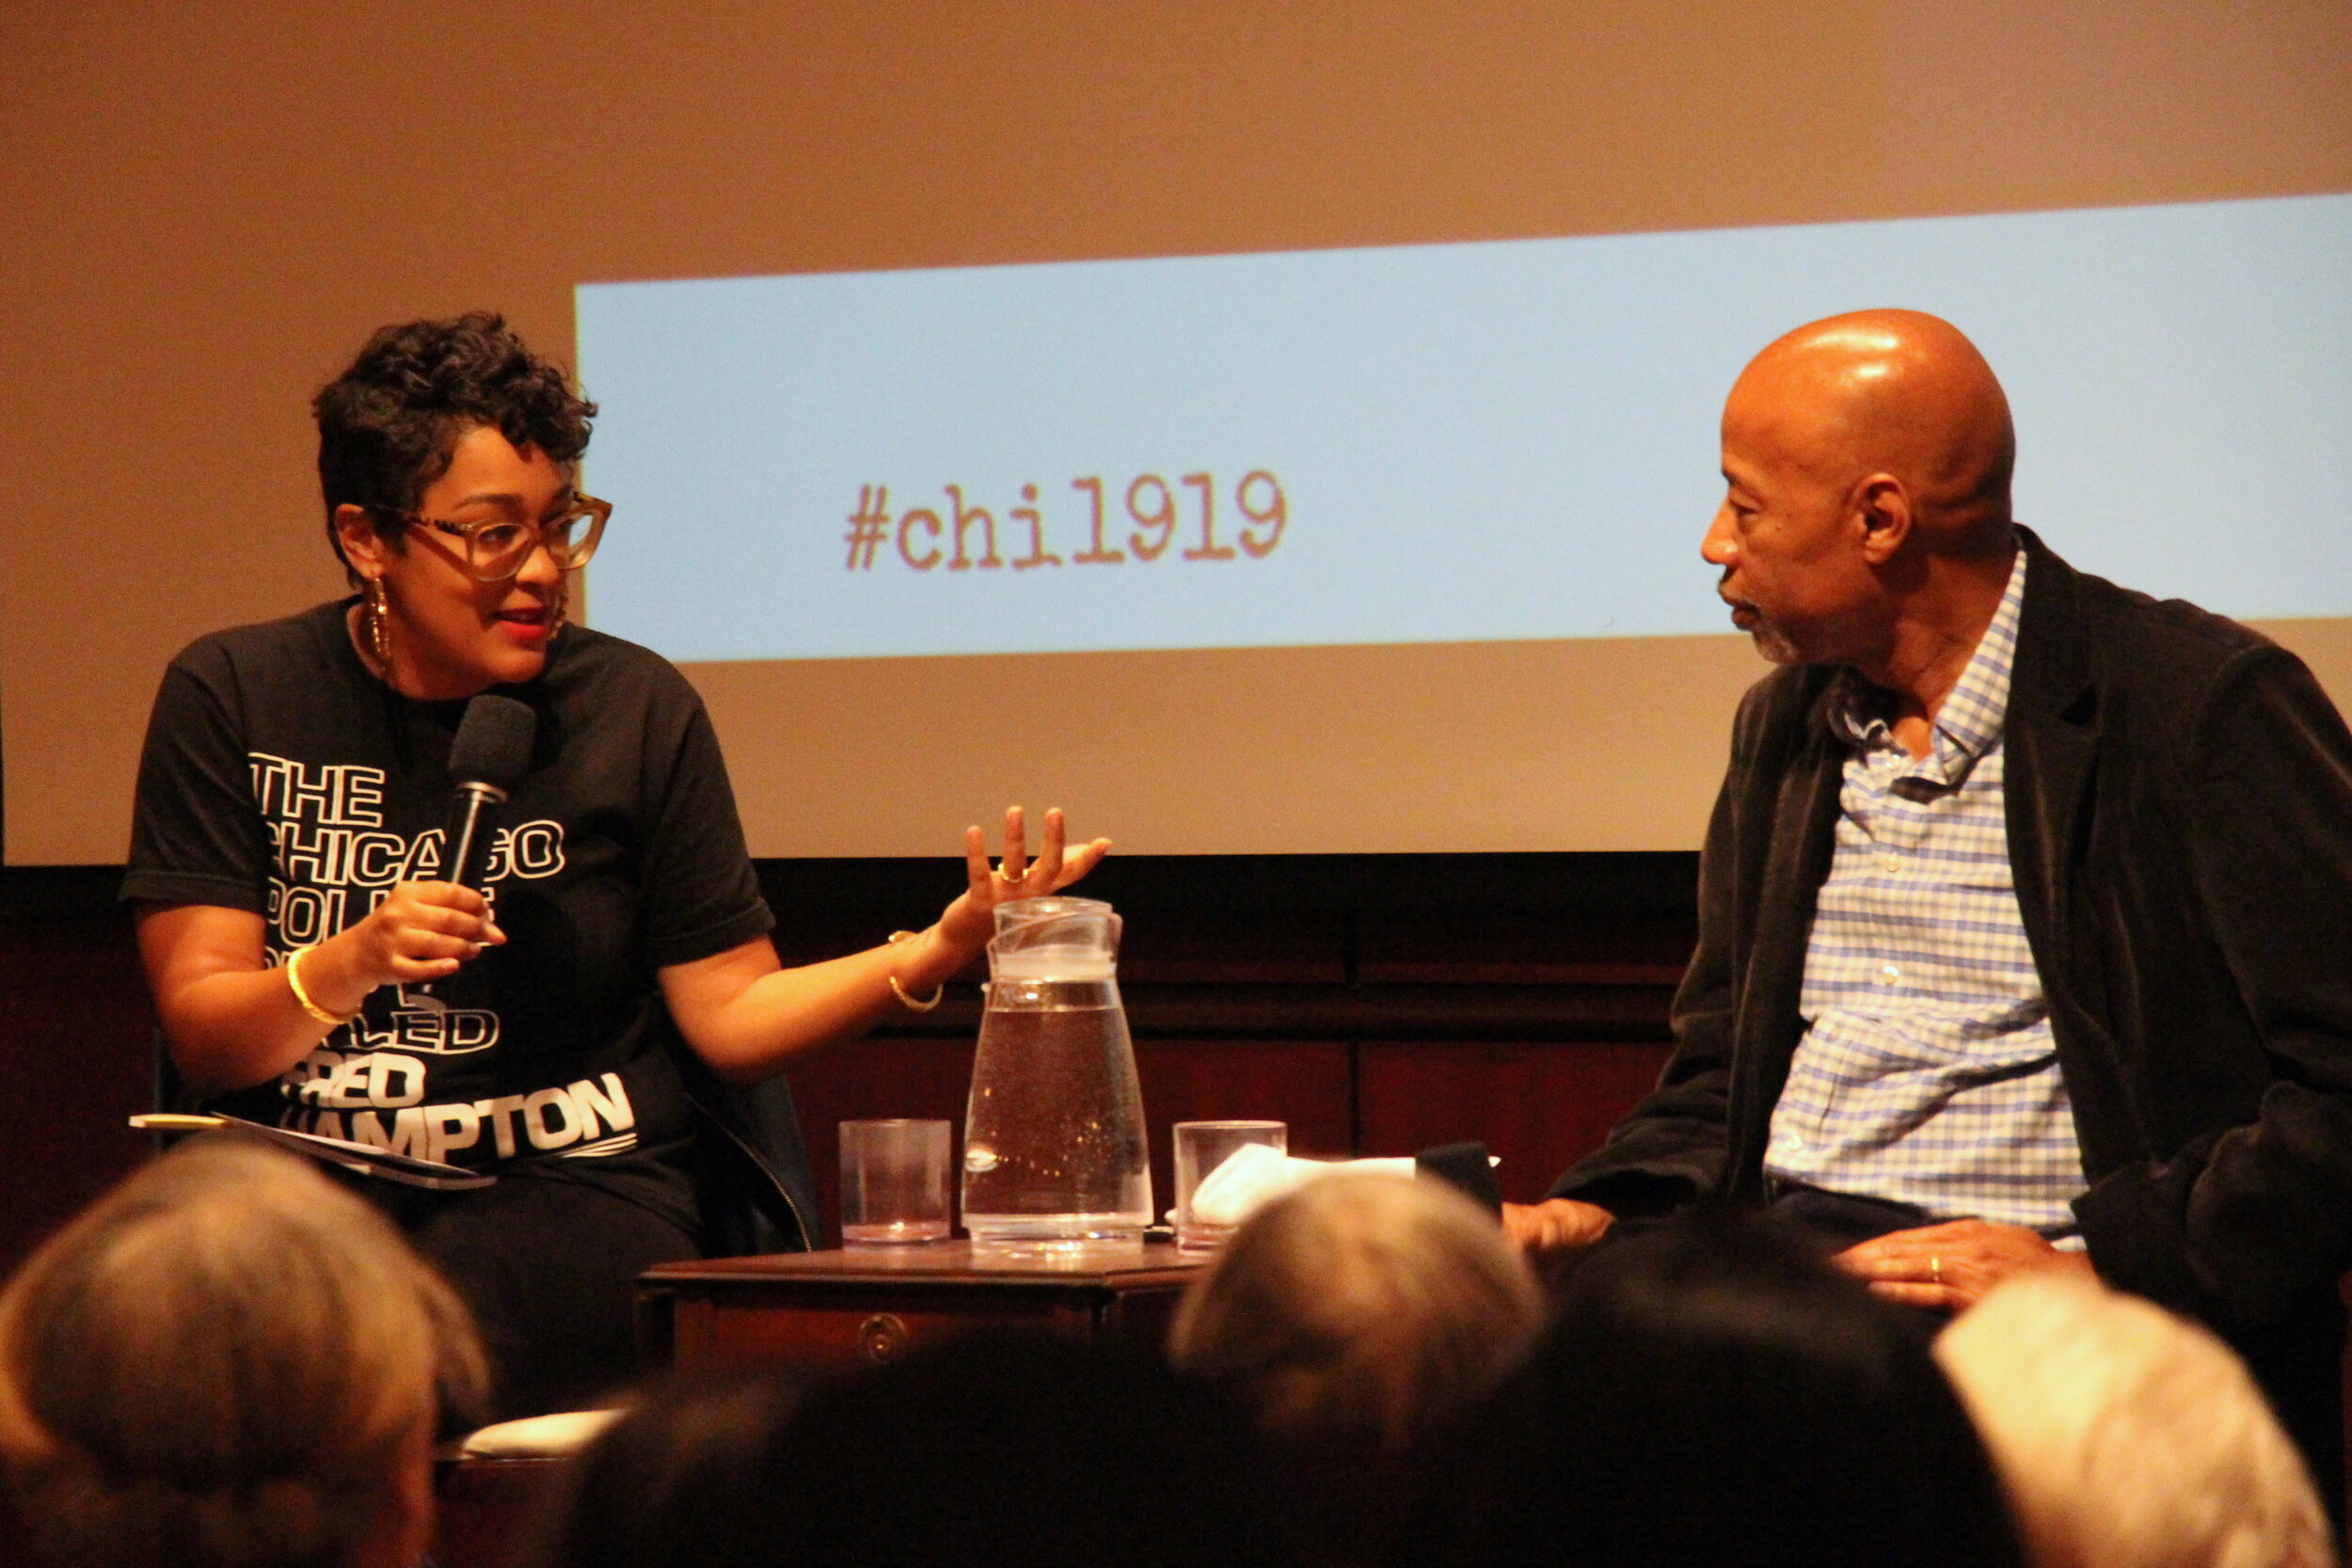 Eve Ewing (left) and Kenneth Warren (right) in conversation about Ewing's identity as poet, comic writer and professor.